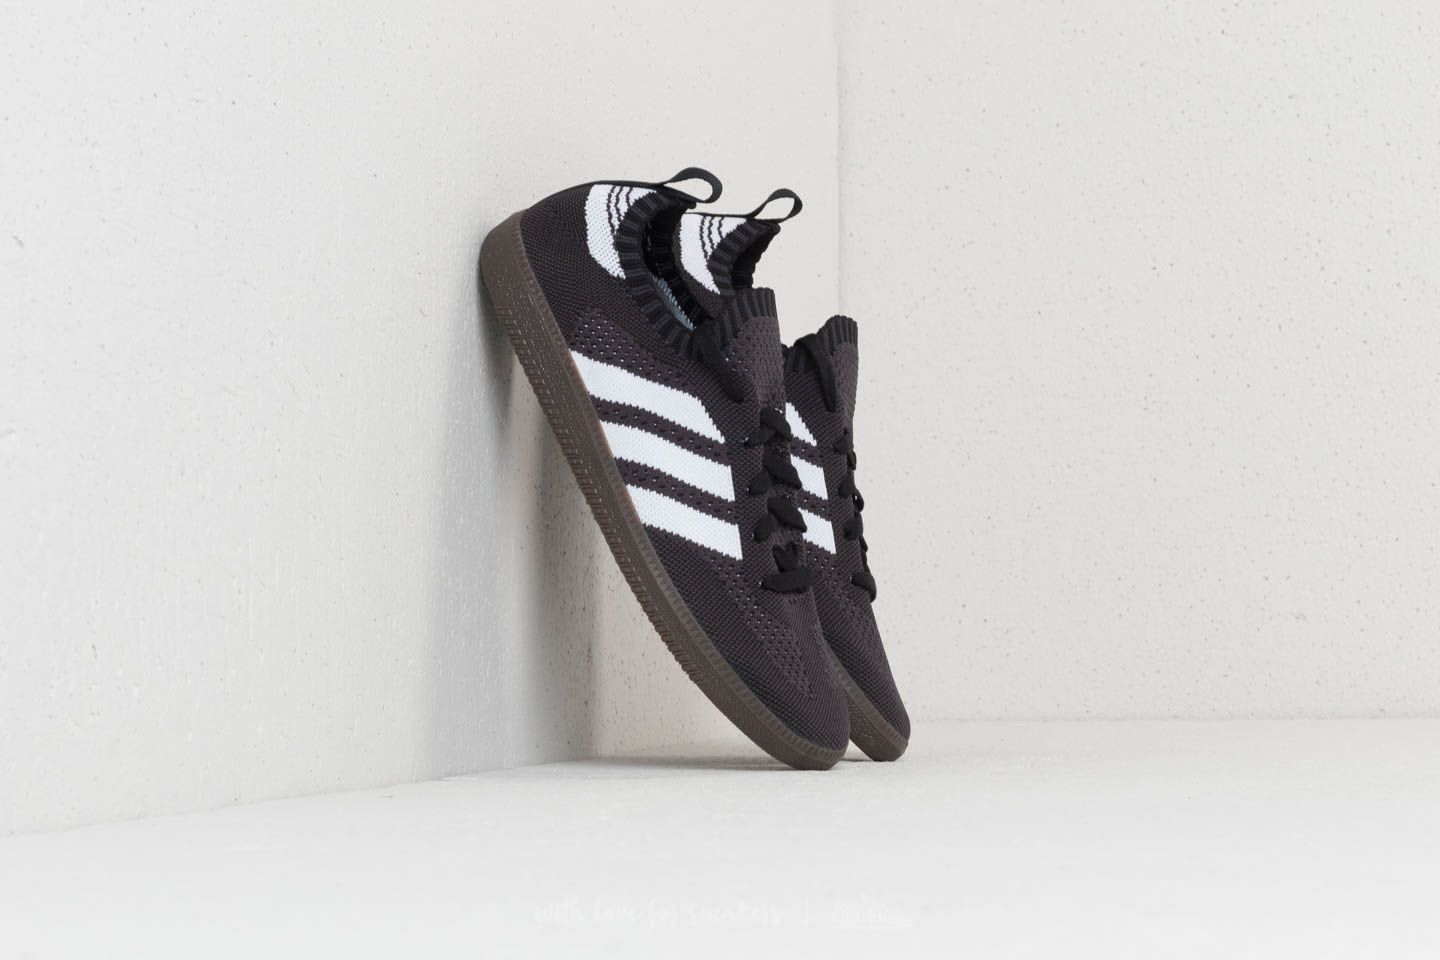 f59cc616ef1 ... originals kaufenliefern switzerland adidas samba primeknit sock core  black ftw white core red at a great price 089ee order herren ...